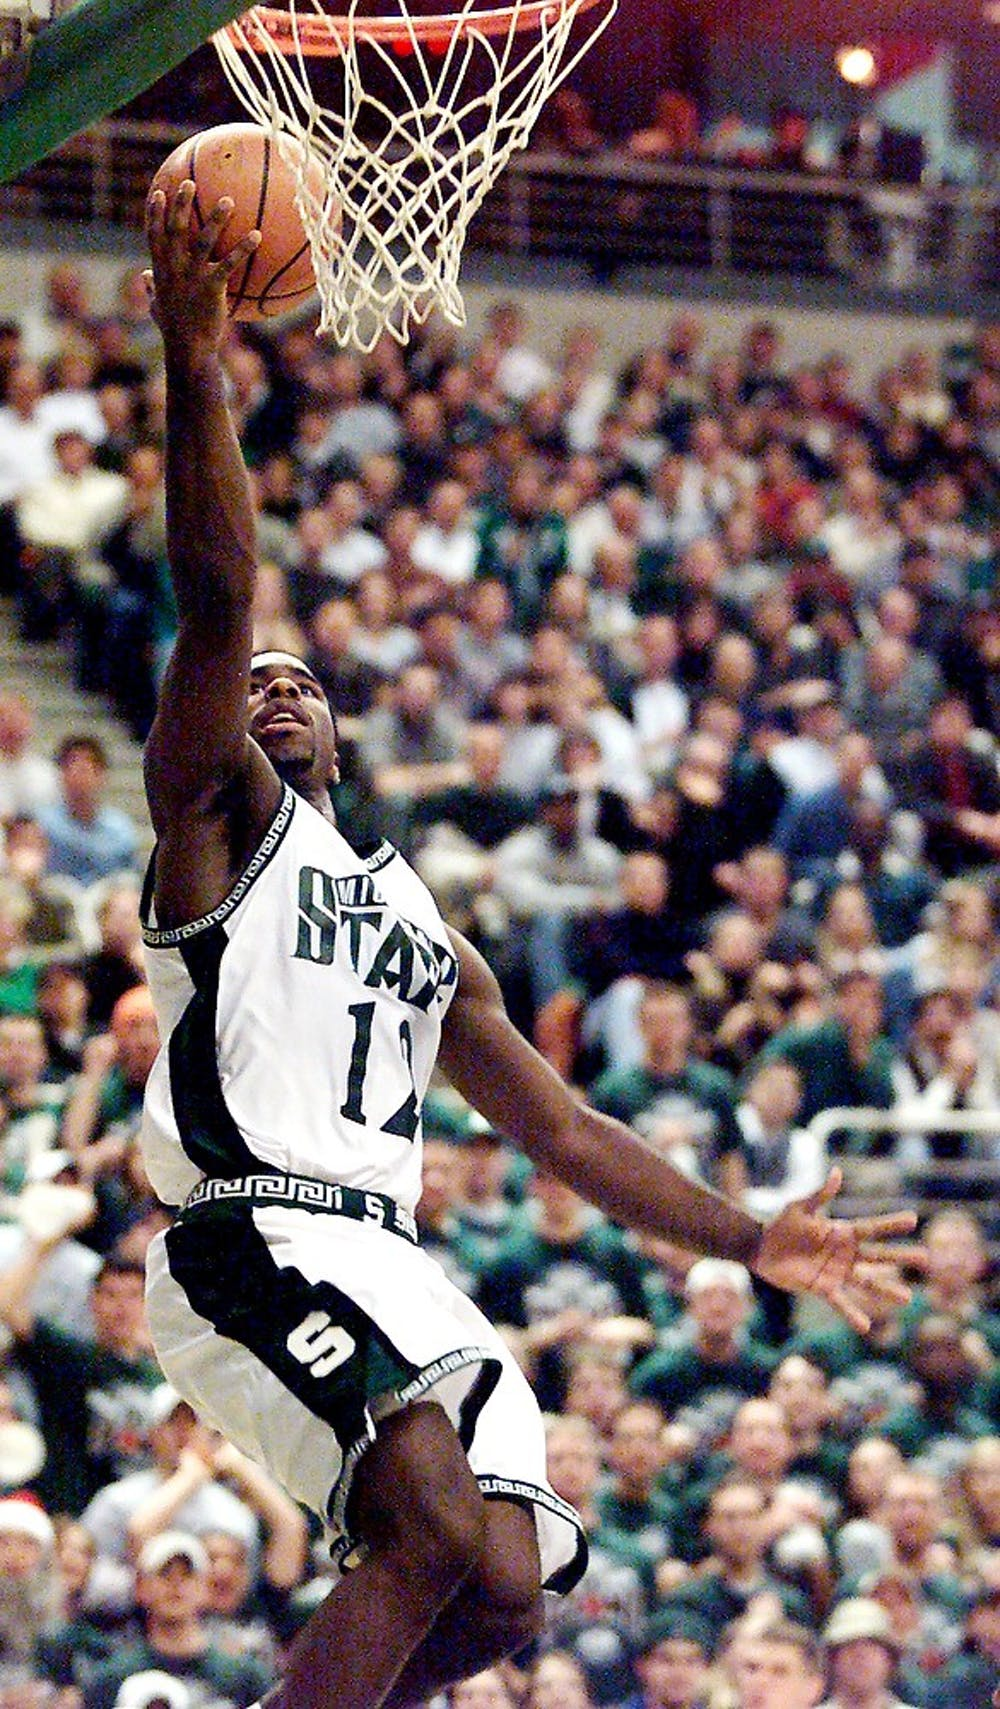 <p>Then-senior guard Mateen Cleaves goes up for a shot against Indiana Tuesday at the Breslin Center. The Spartans won, 77-71 in overtime, giving Tom Izzo his 100th win as MSU head coach.Photo courtesy of MSU Athletics by Cory Morse</p>